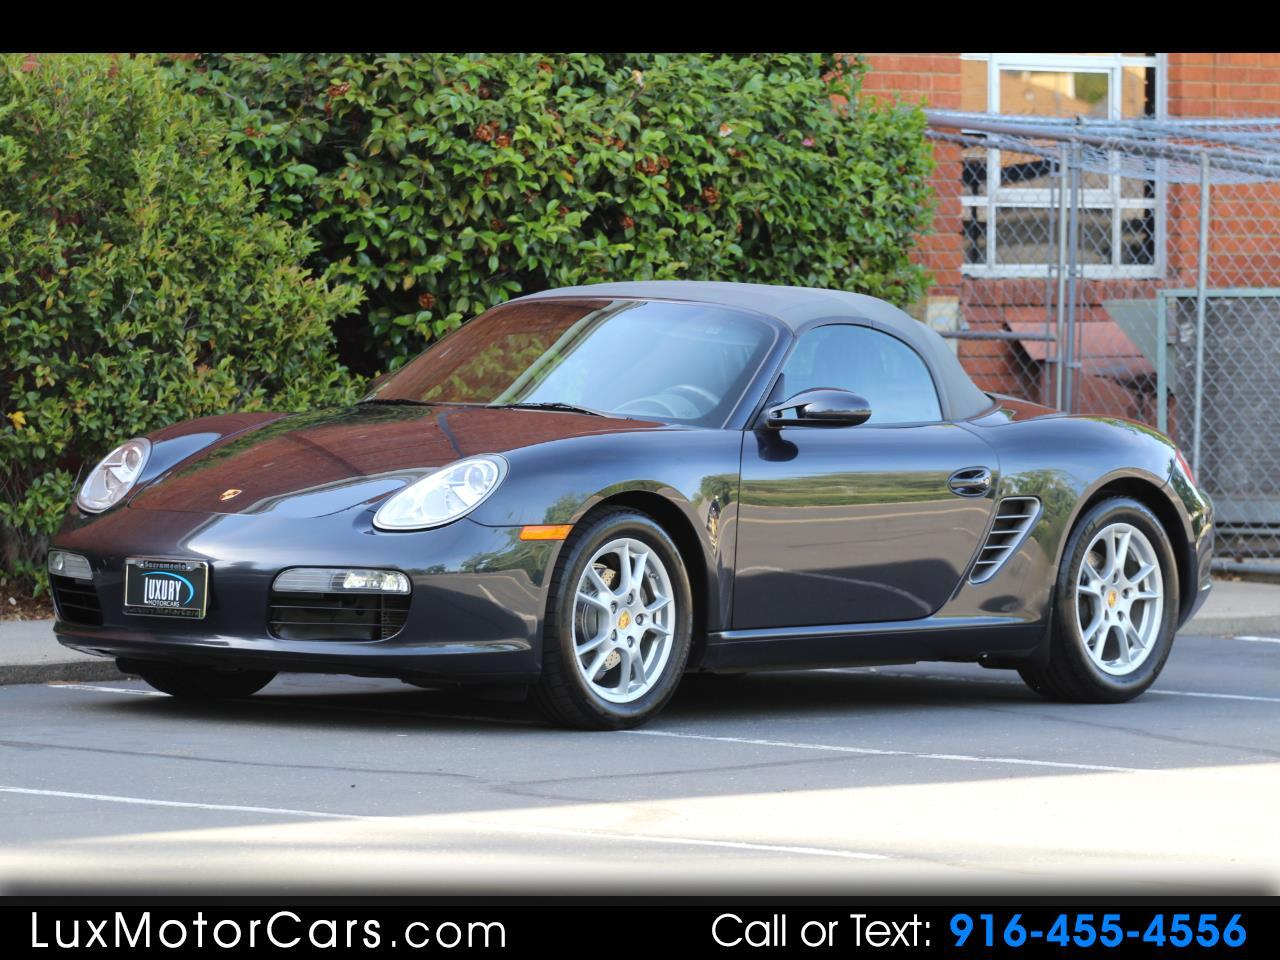 2007 Porsche Boxster 2dr Roadster 5-Spd Manual